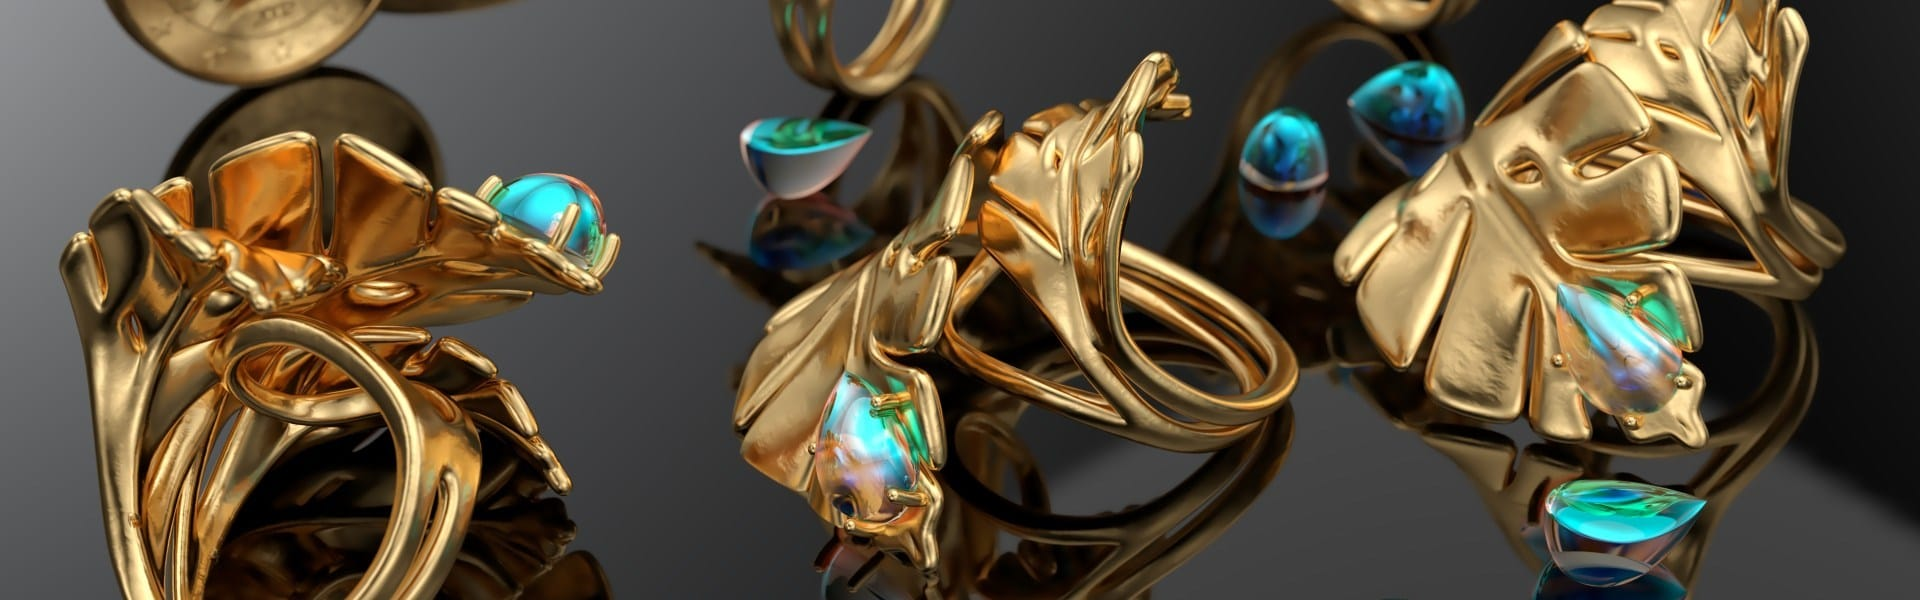 A CG image of gold and opal rings